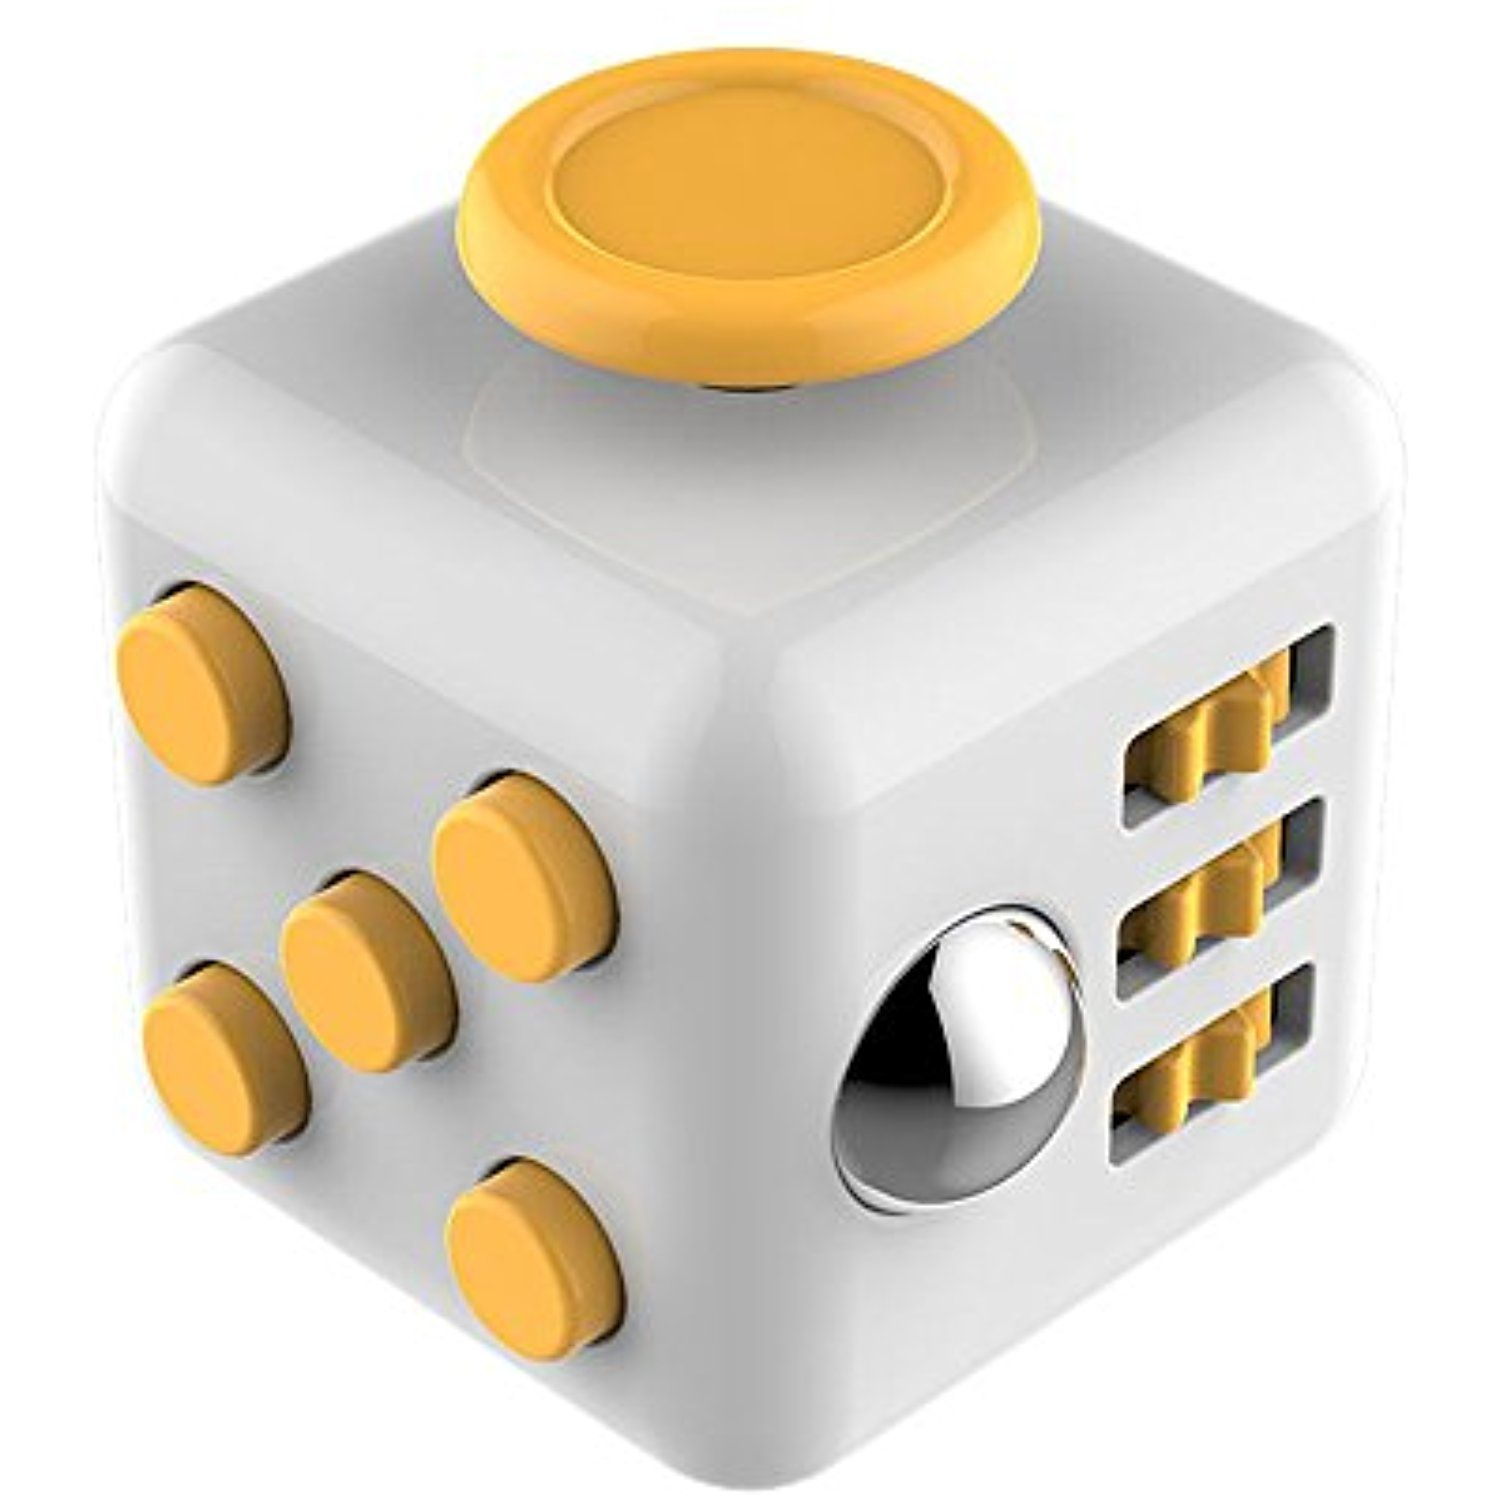 JOHN CABOT Fidget Cube Relieves Stress And Anxiety For Children Adults Yellow You Can Get More Details By Clicking On The Image